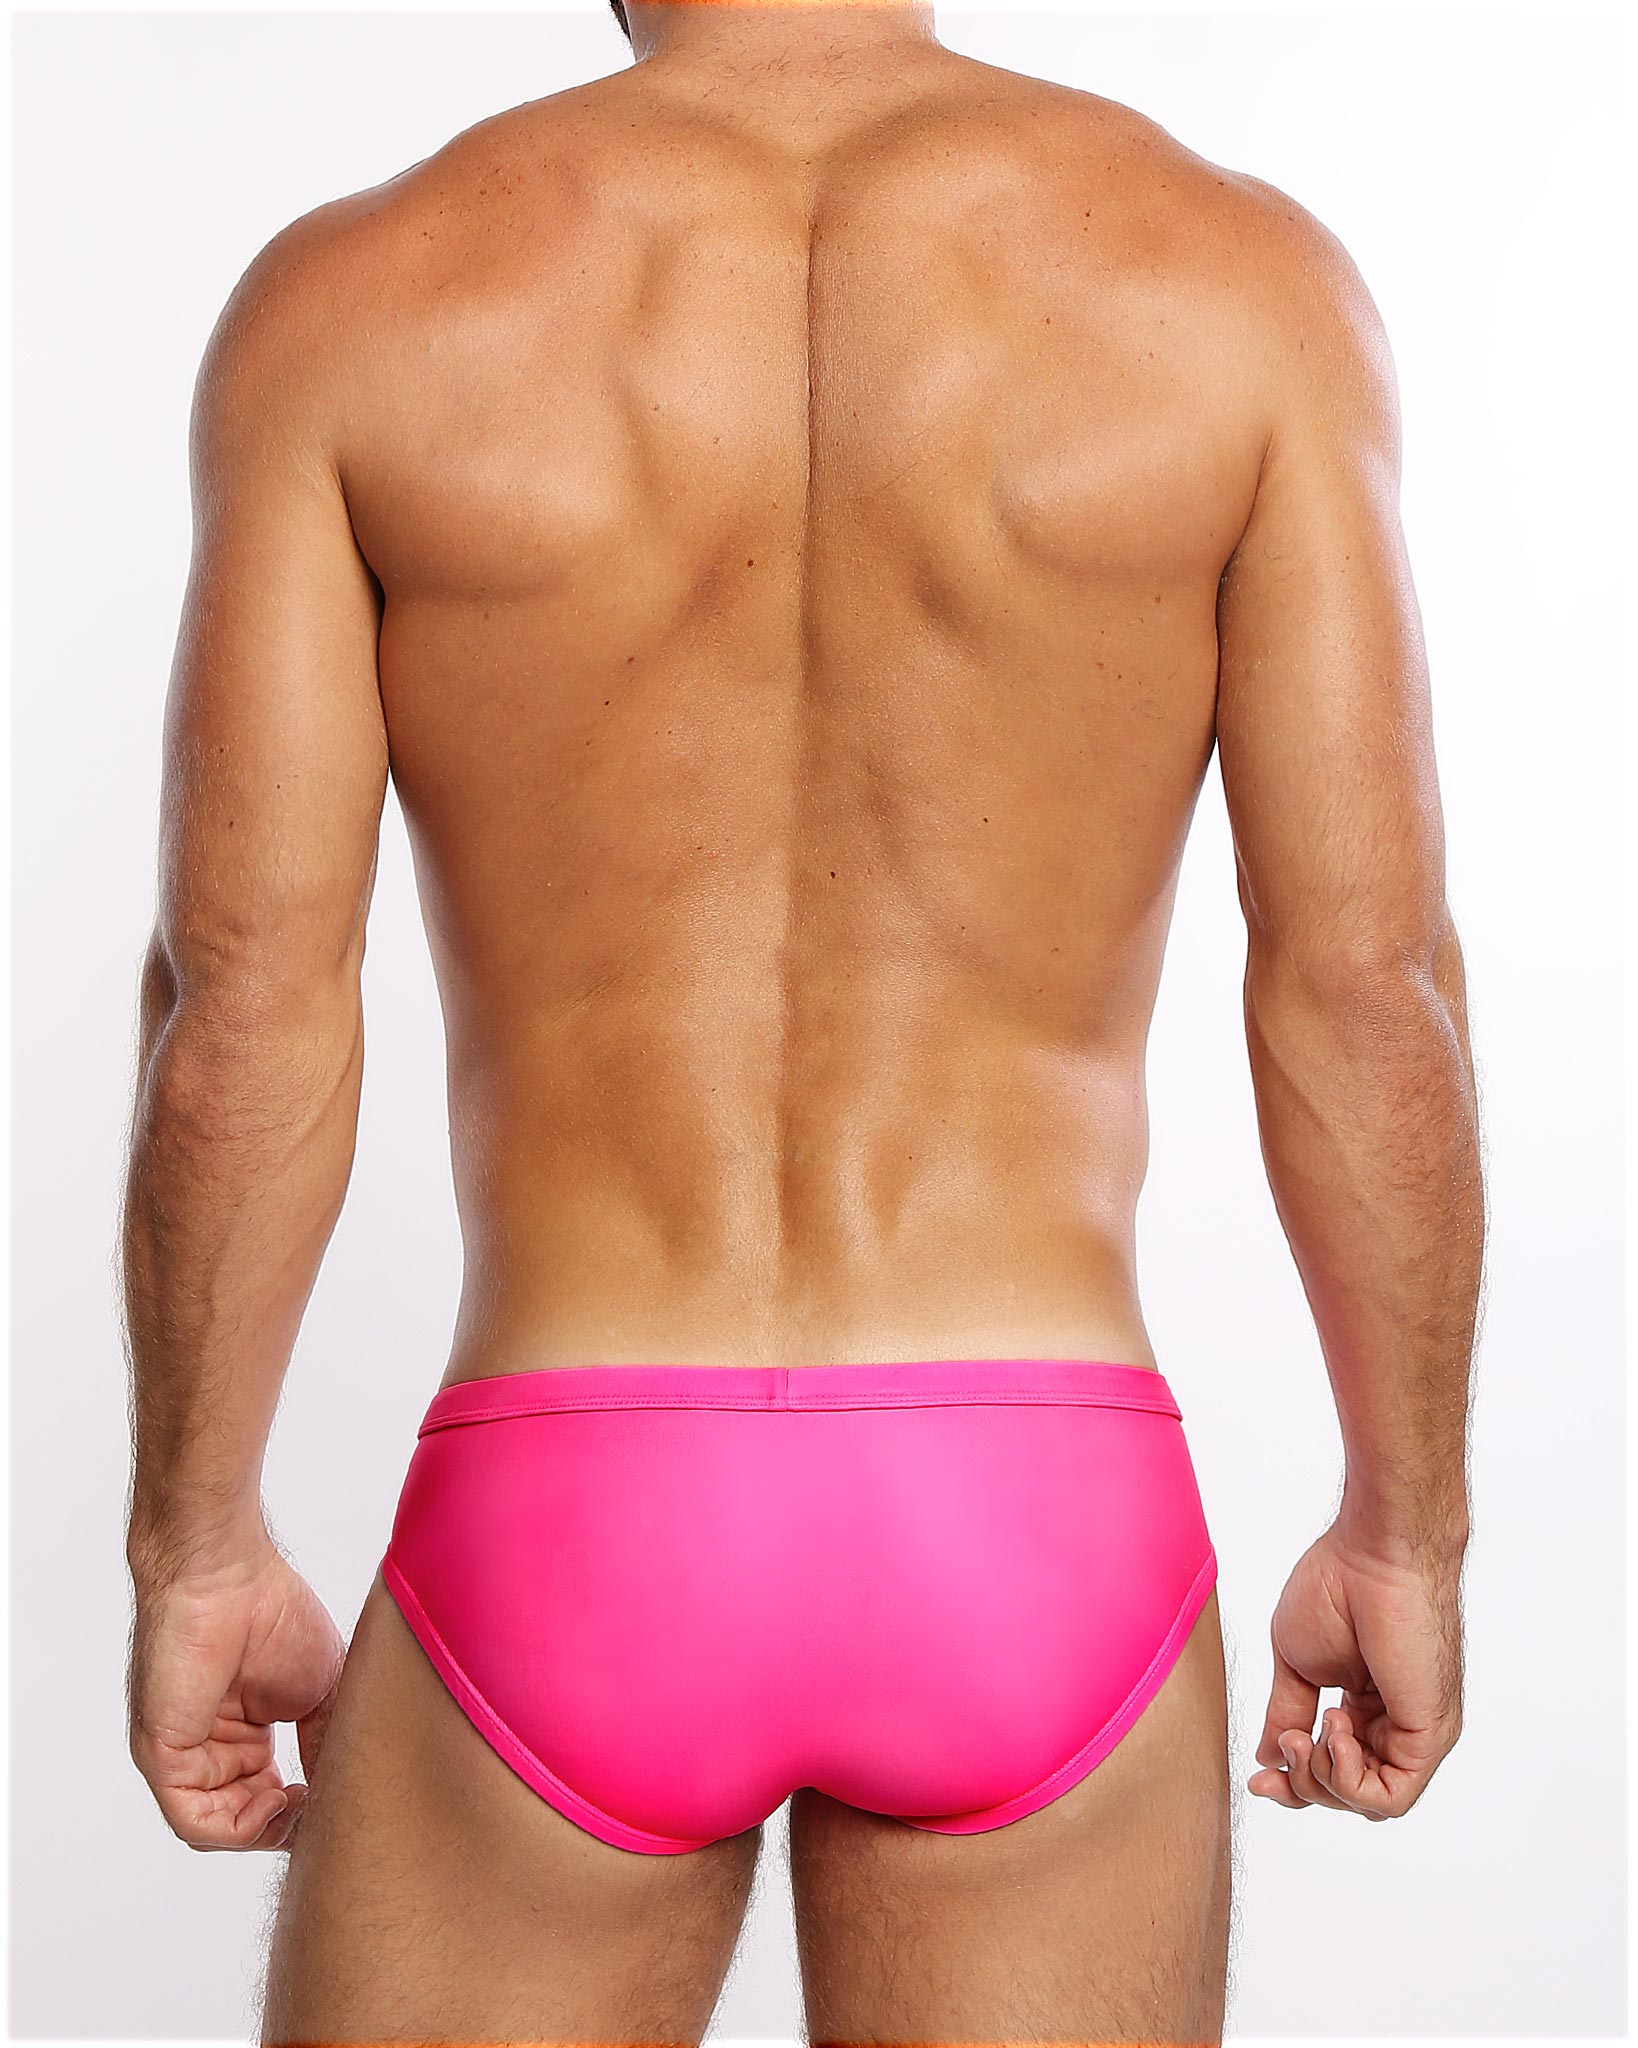 Pinkfatuation Swim Brief Bang Clothes Men Swimwear Swimsuits